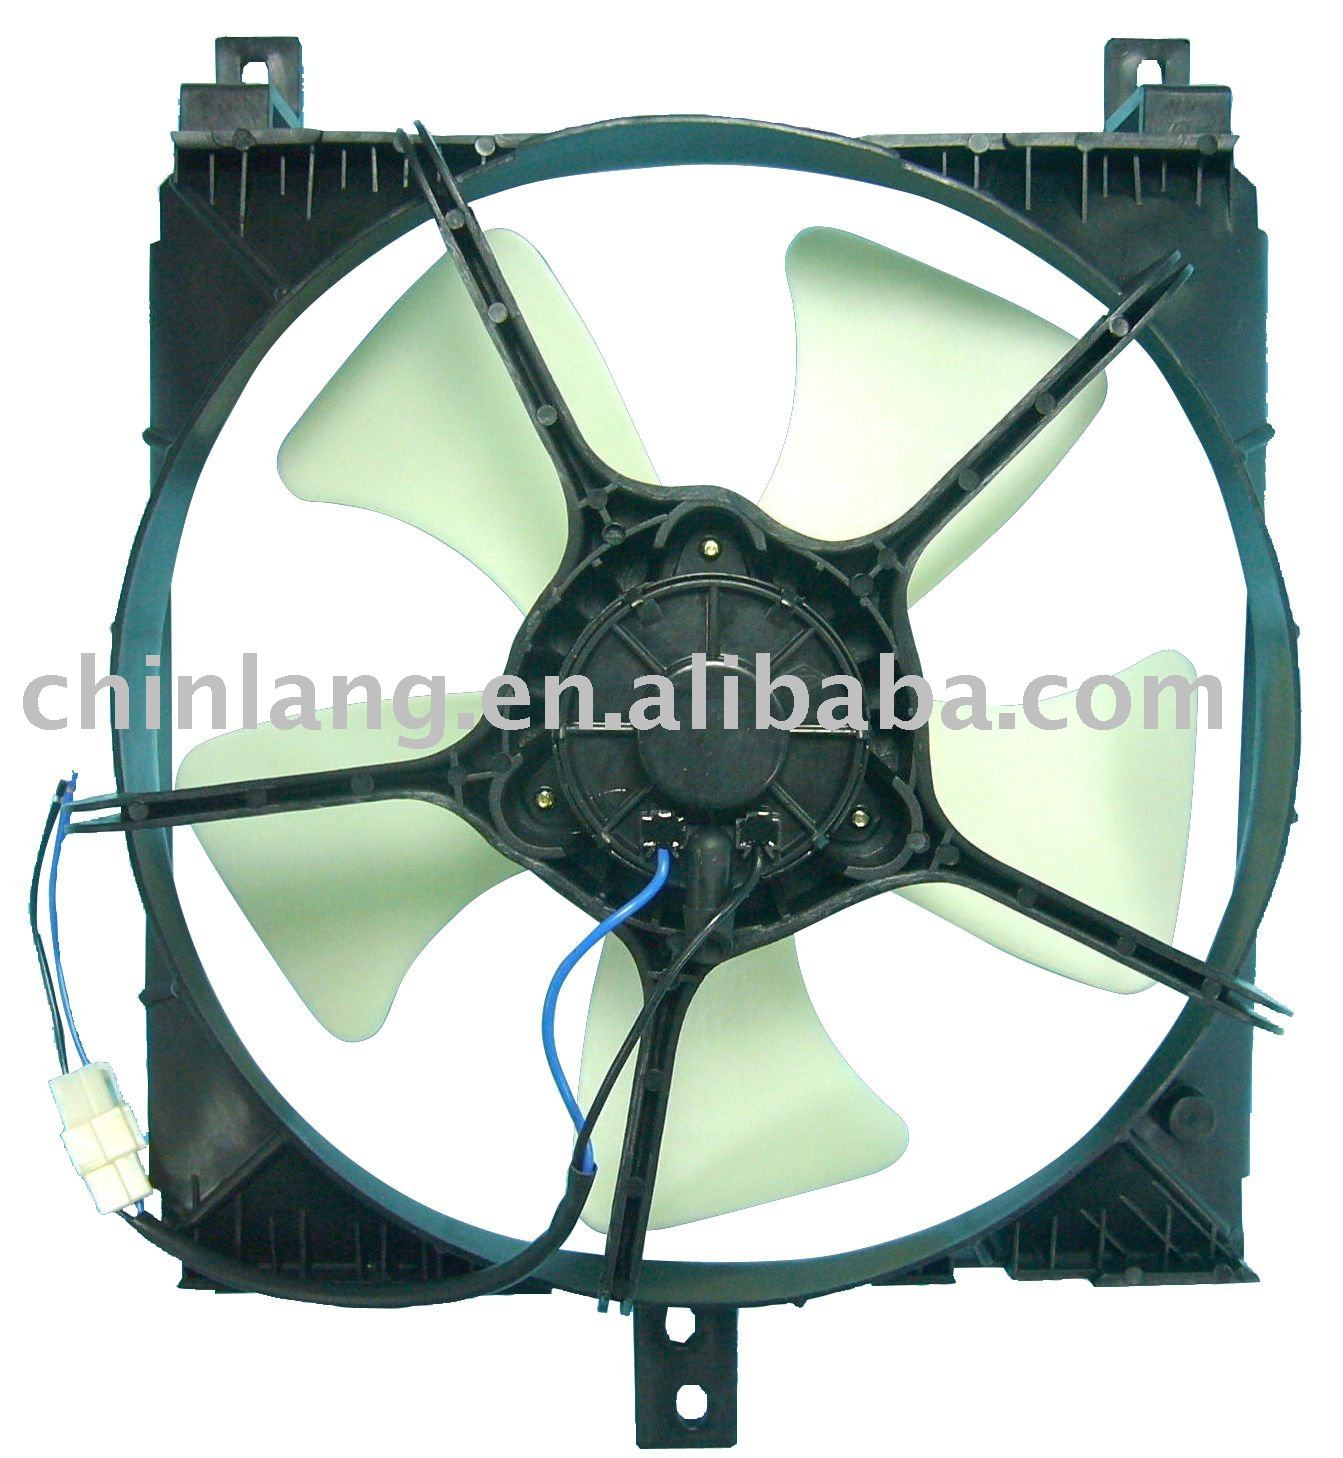 Radiator Fan/Auto Cooling Fan/Condenser Fan/Fan Motor For SUZUKI CULTUS SWIFT MT 89'~94'